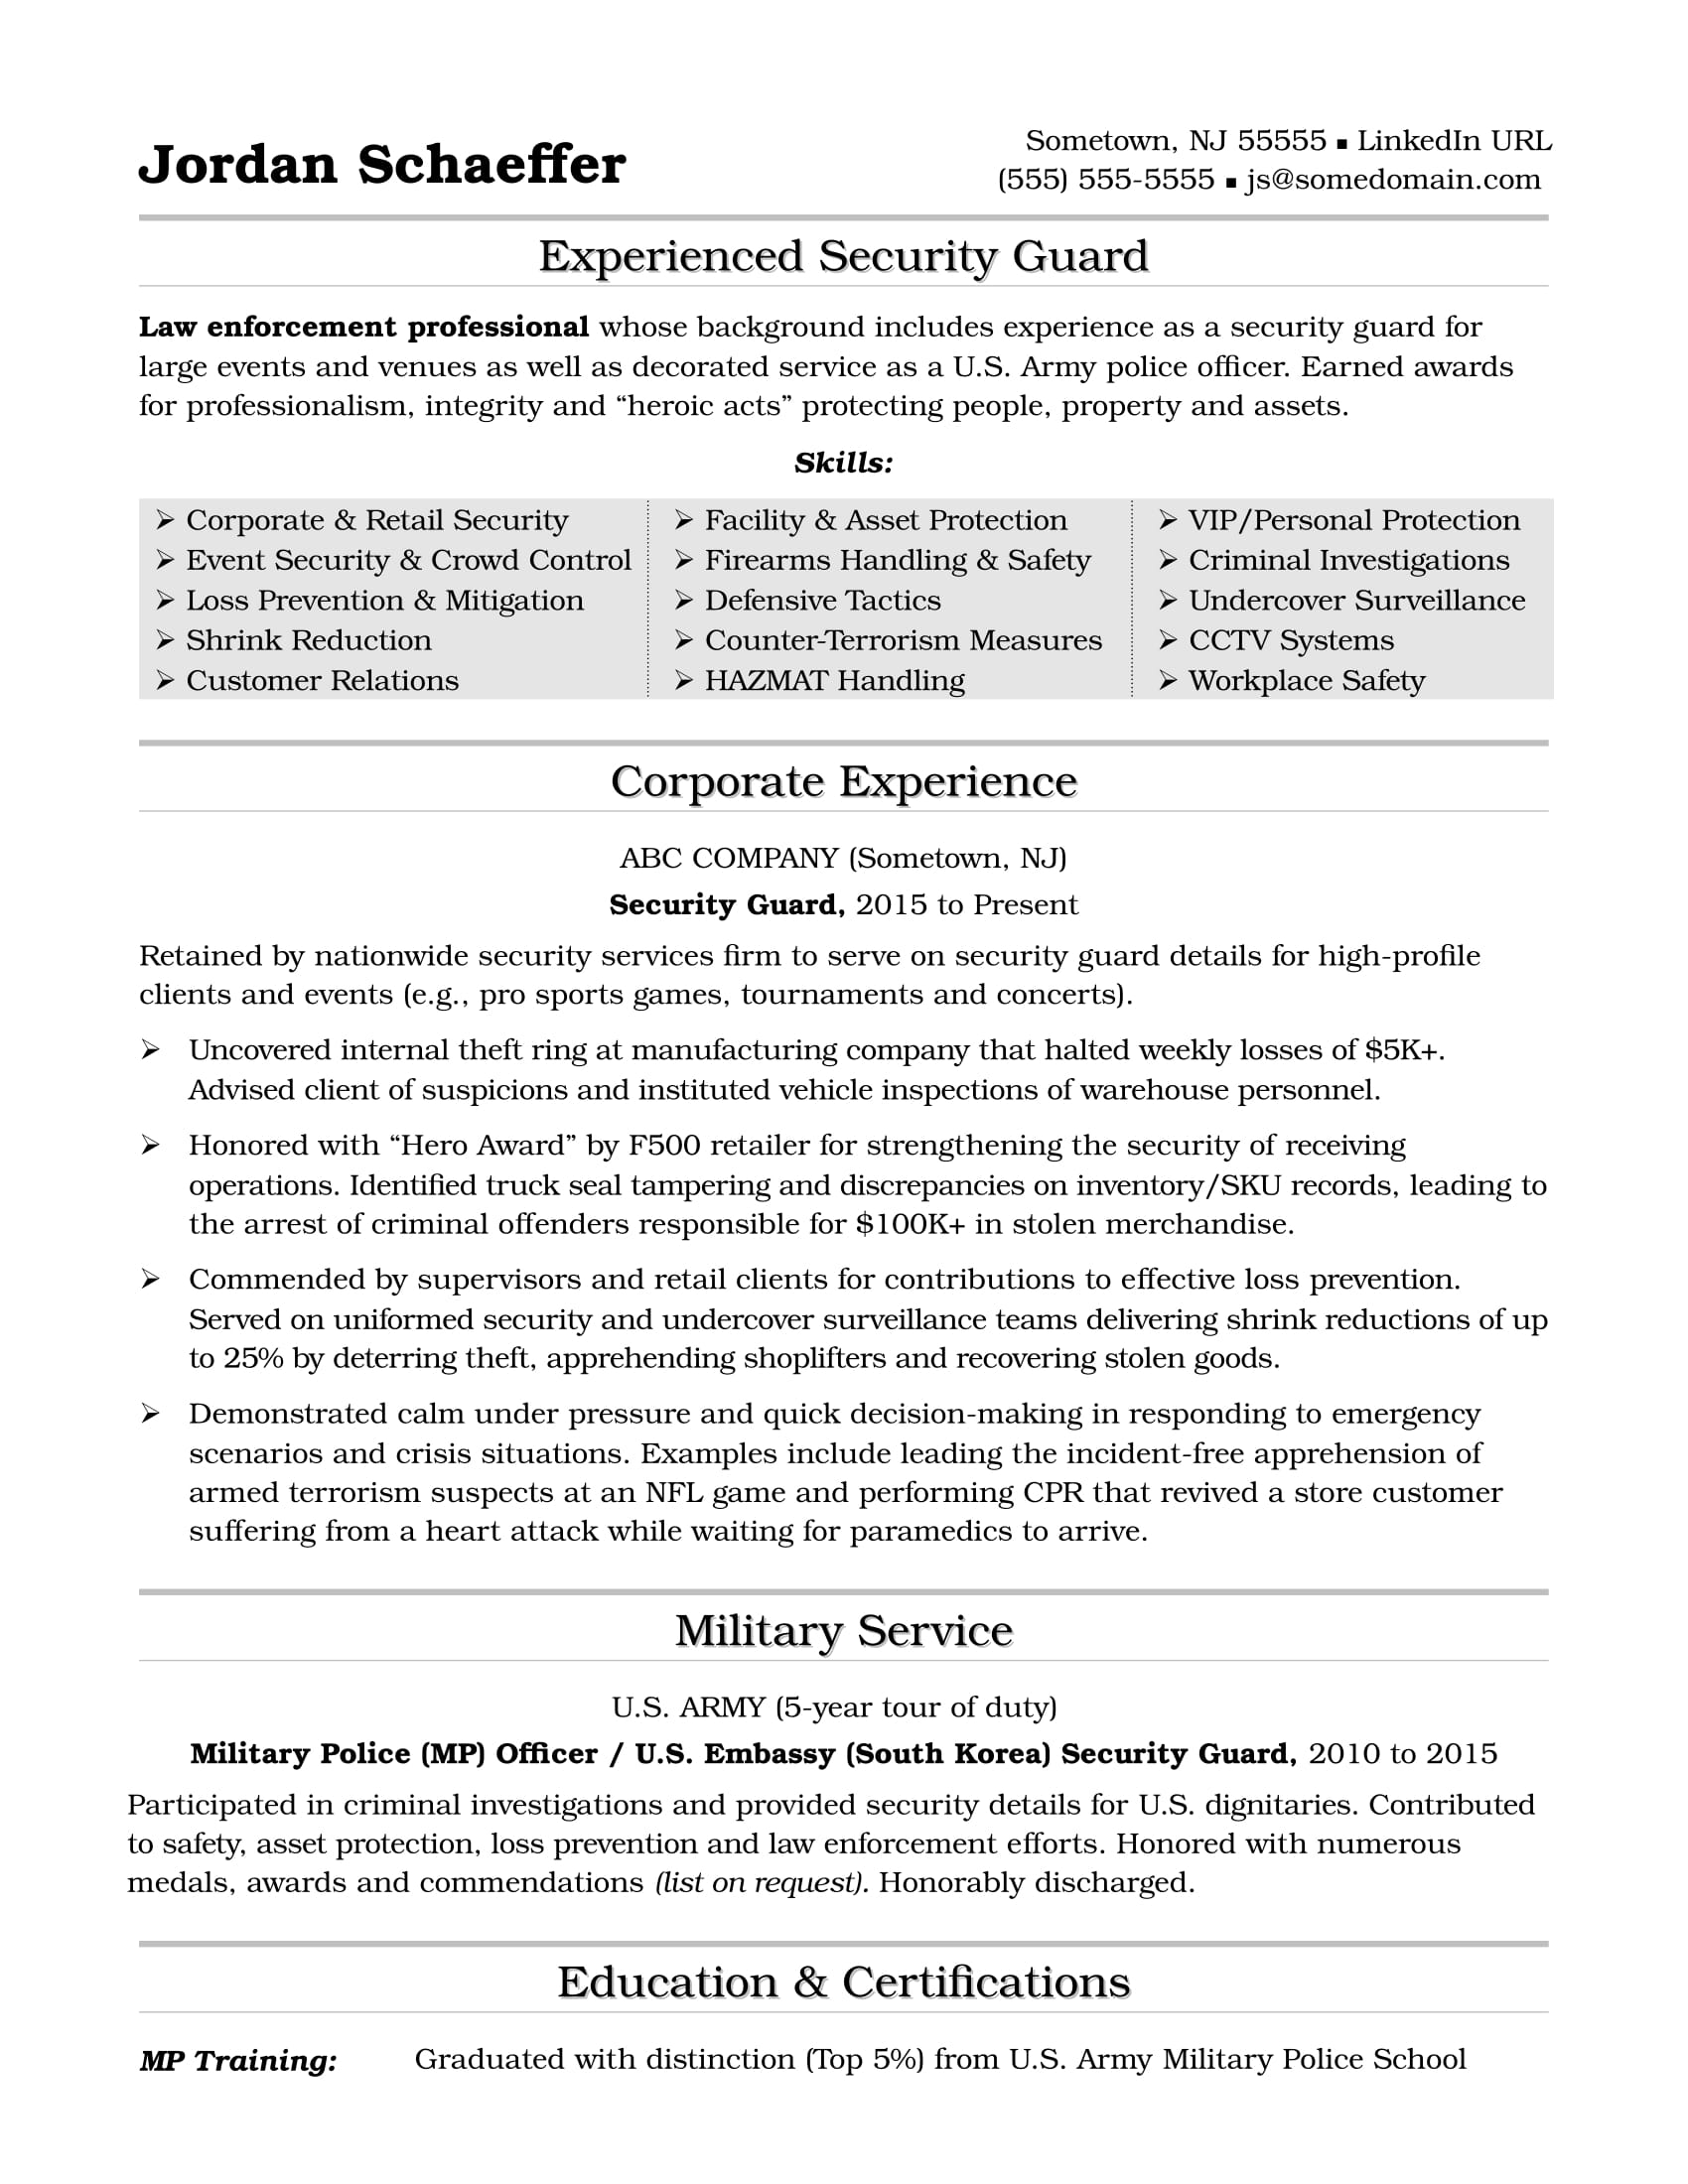 resume Resume For Security Officer security guard resume sample monster com sample